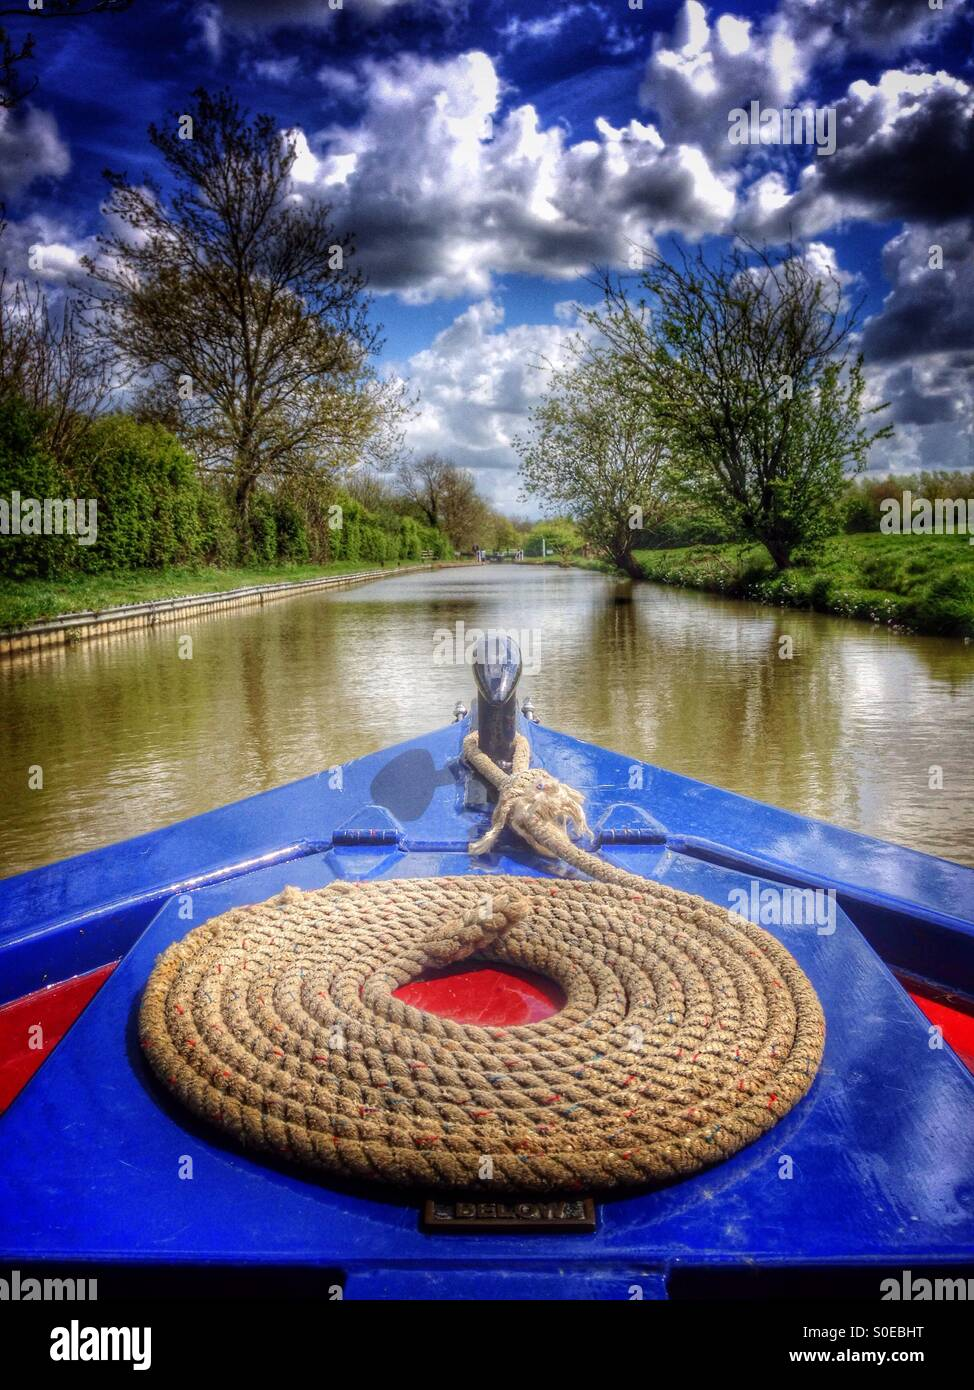 Bow of a traditional narrowboat on the South Oxford Canal near Cropredy, Oxfordshire, England. - Stock Image